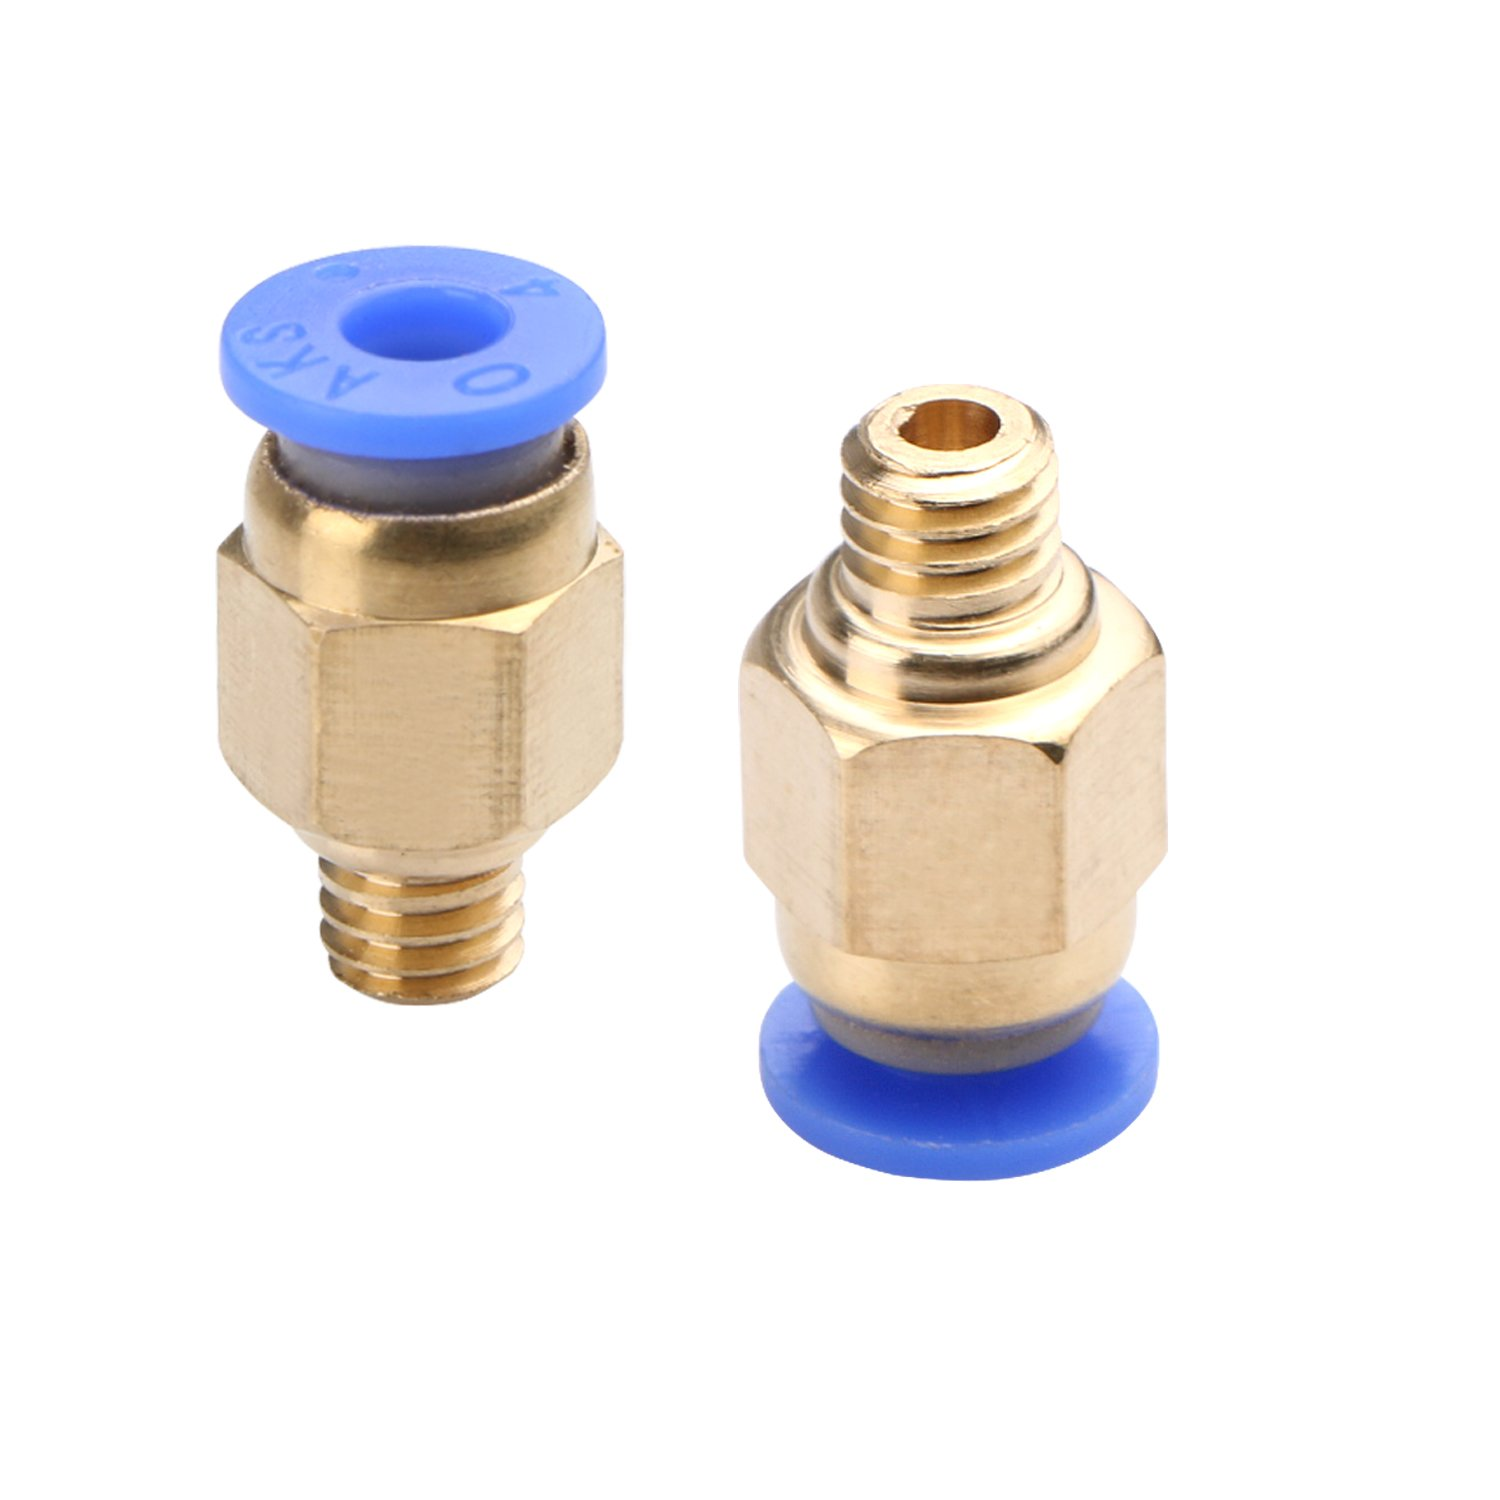 PC4-M6 Quick in Fitting for 3D Printer Bowden Extruder Pack of 30pcs Unime PC4-M10 Straight Pneumatic Fitting Push to Connect